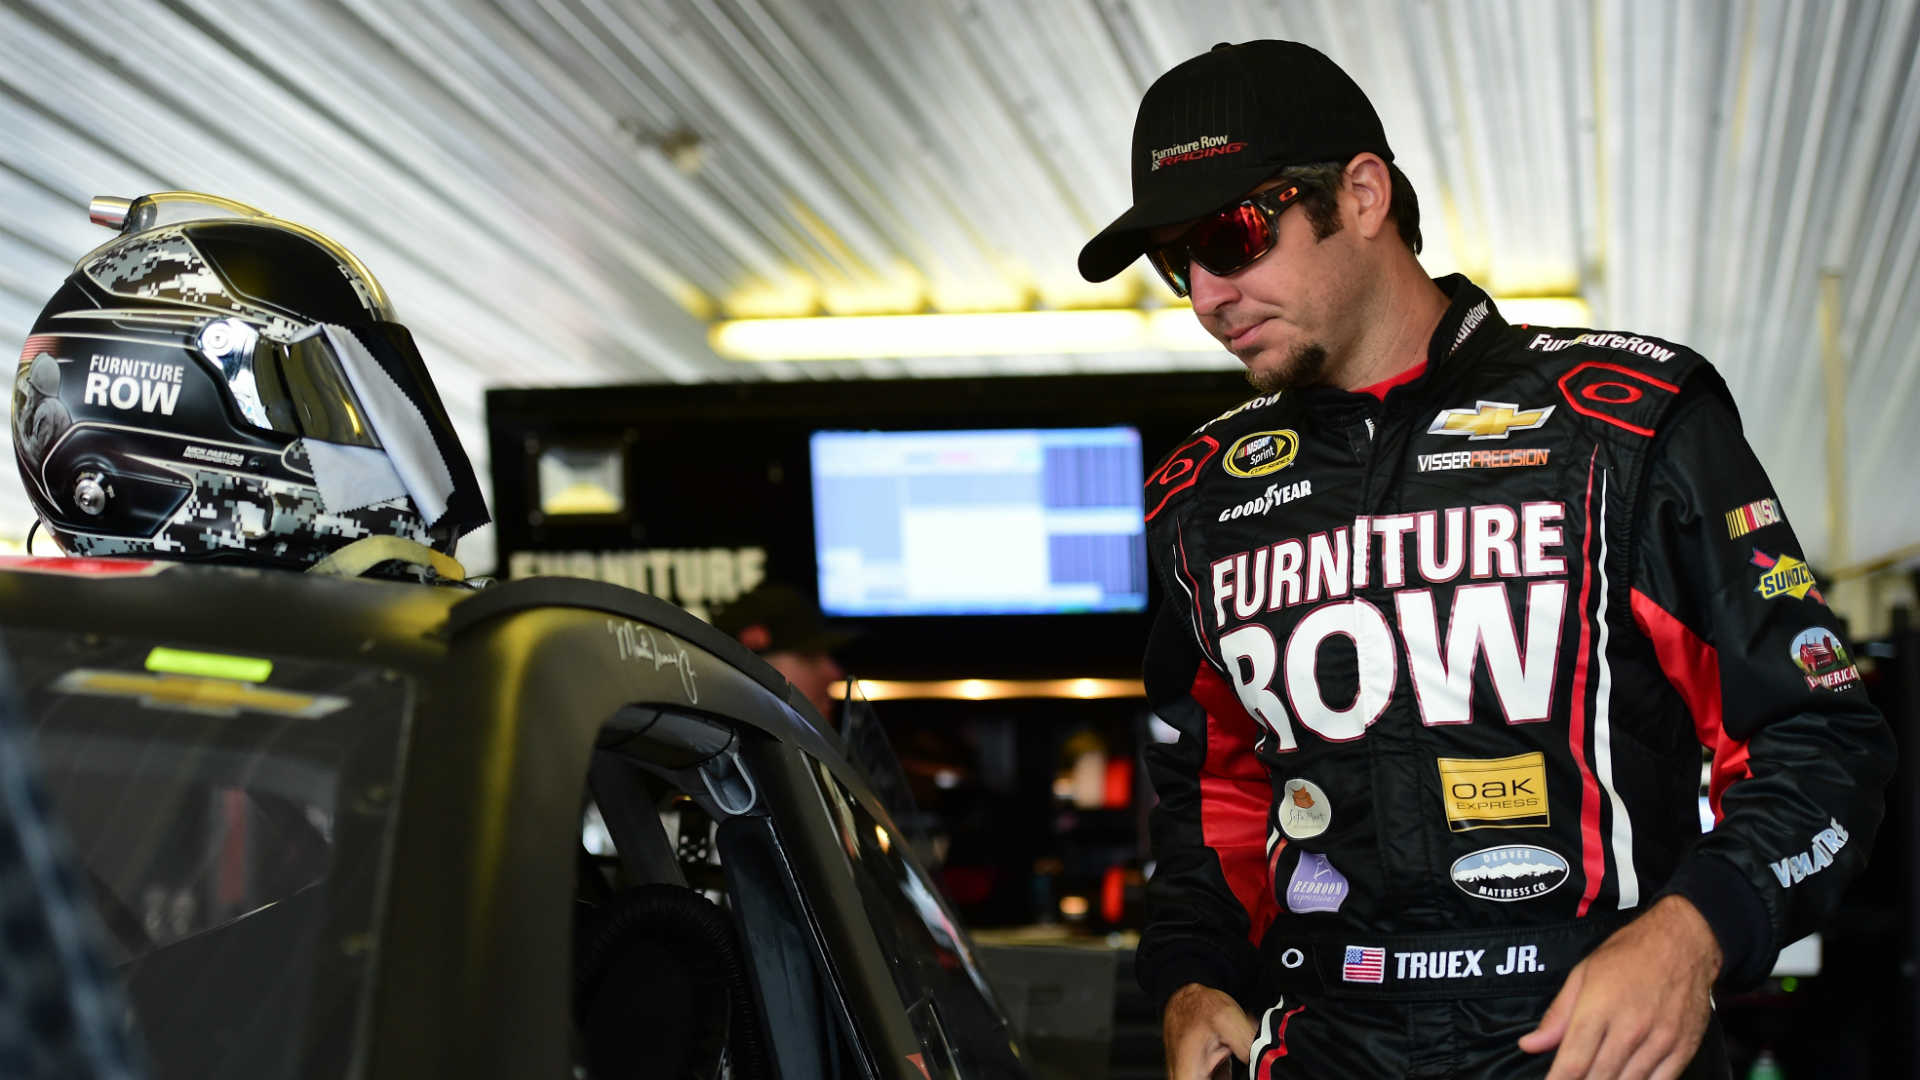 Truex-Martin-06132015-US-News-Getty-FTR